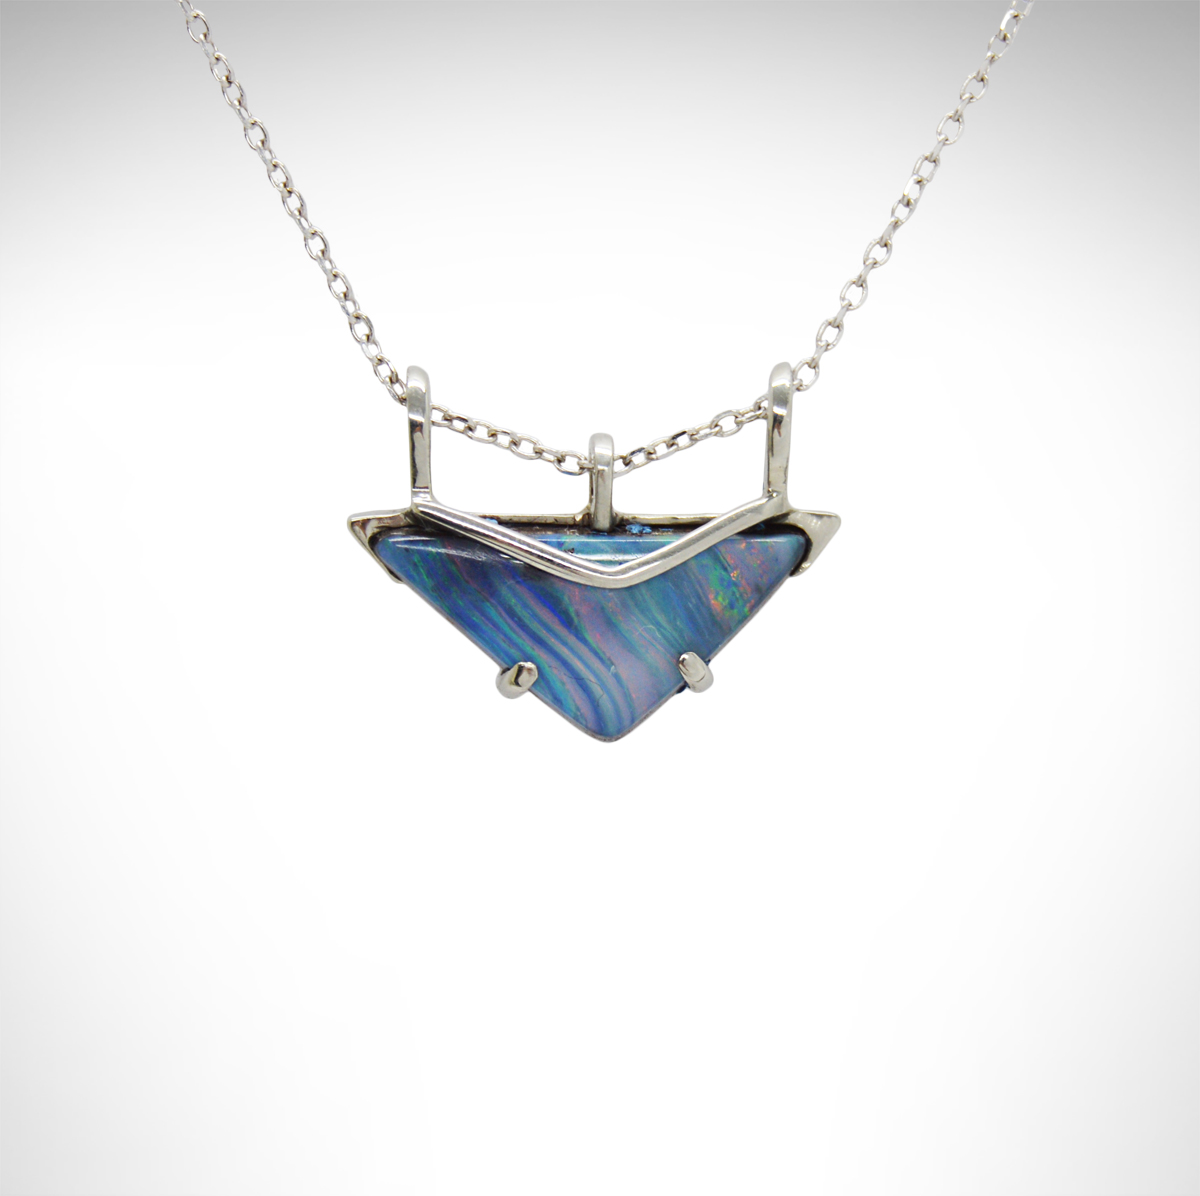 Australian boulder opal with striations of blue, green, purple with geometric triangular design slides on cable chain, 14K white gold, minimalist prong style